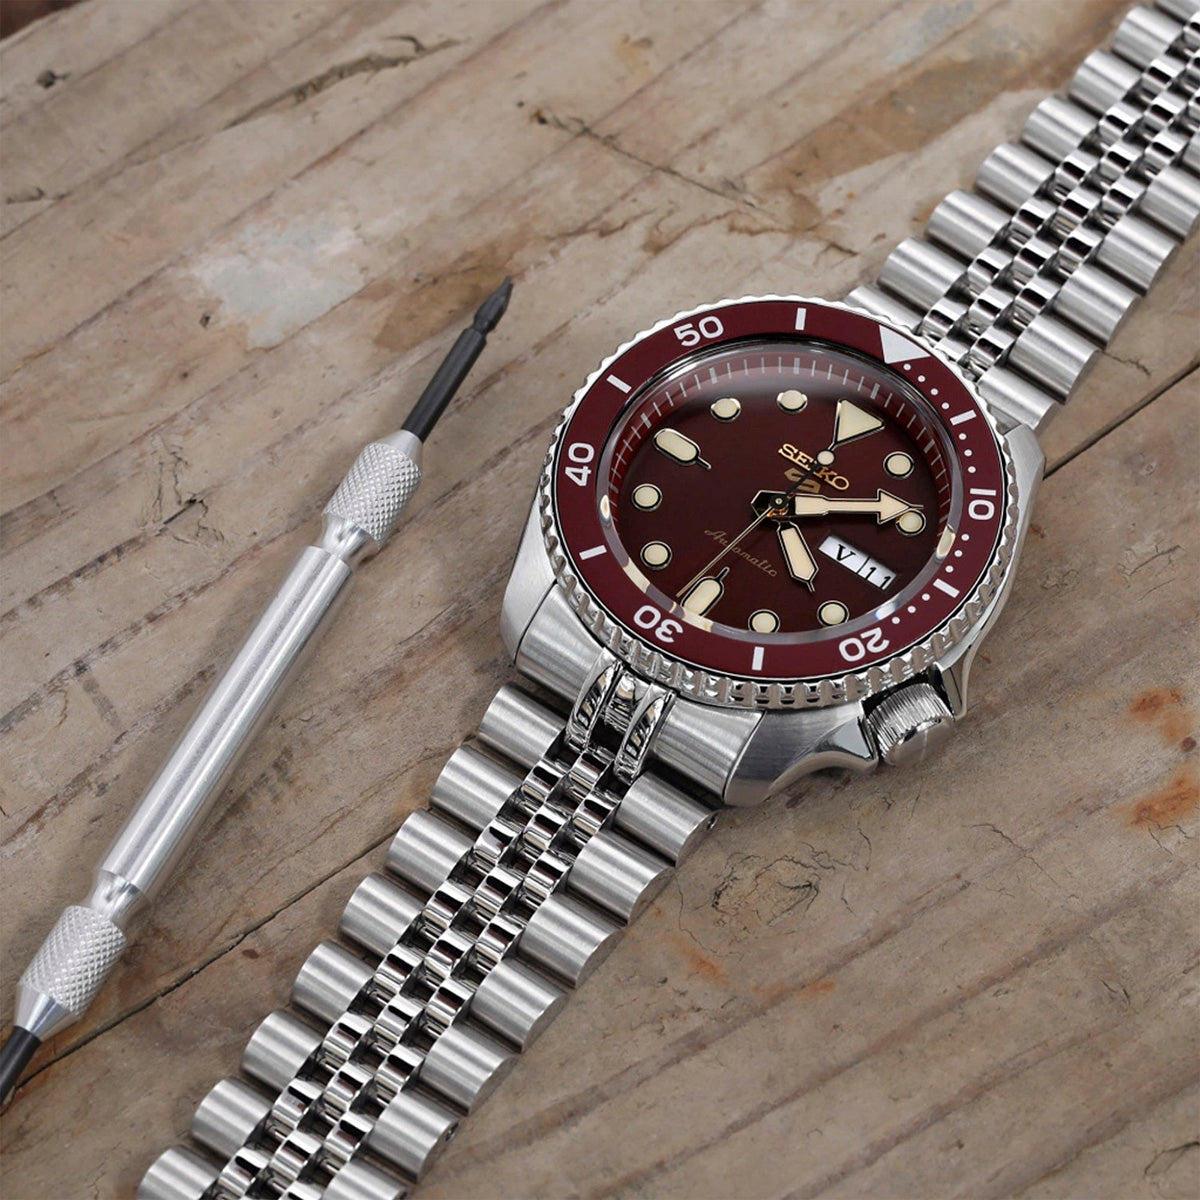 NEW Seiko 5 SPORTS SRPD69K1 (FLAT HARDLEX CRYSTAL)